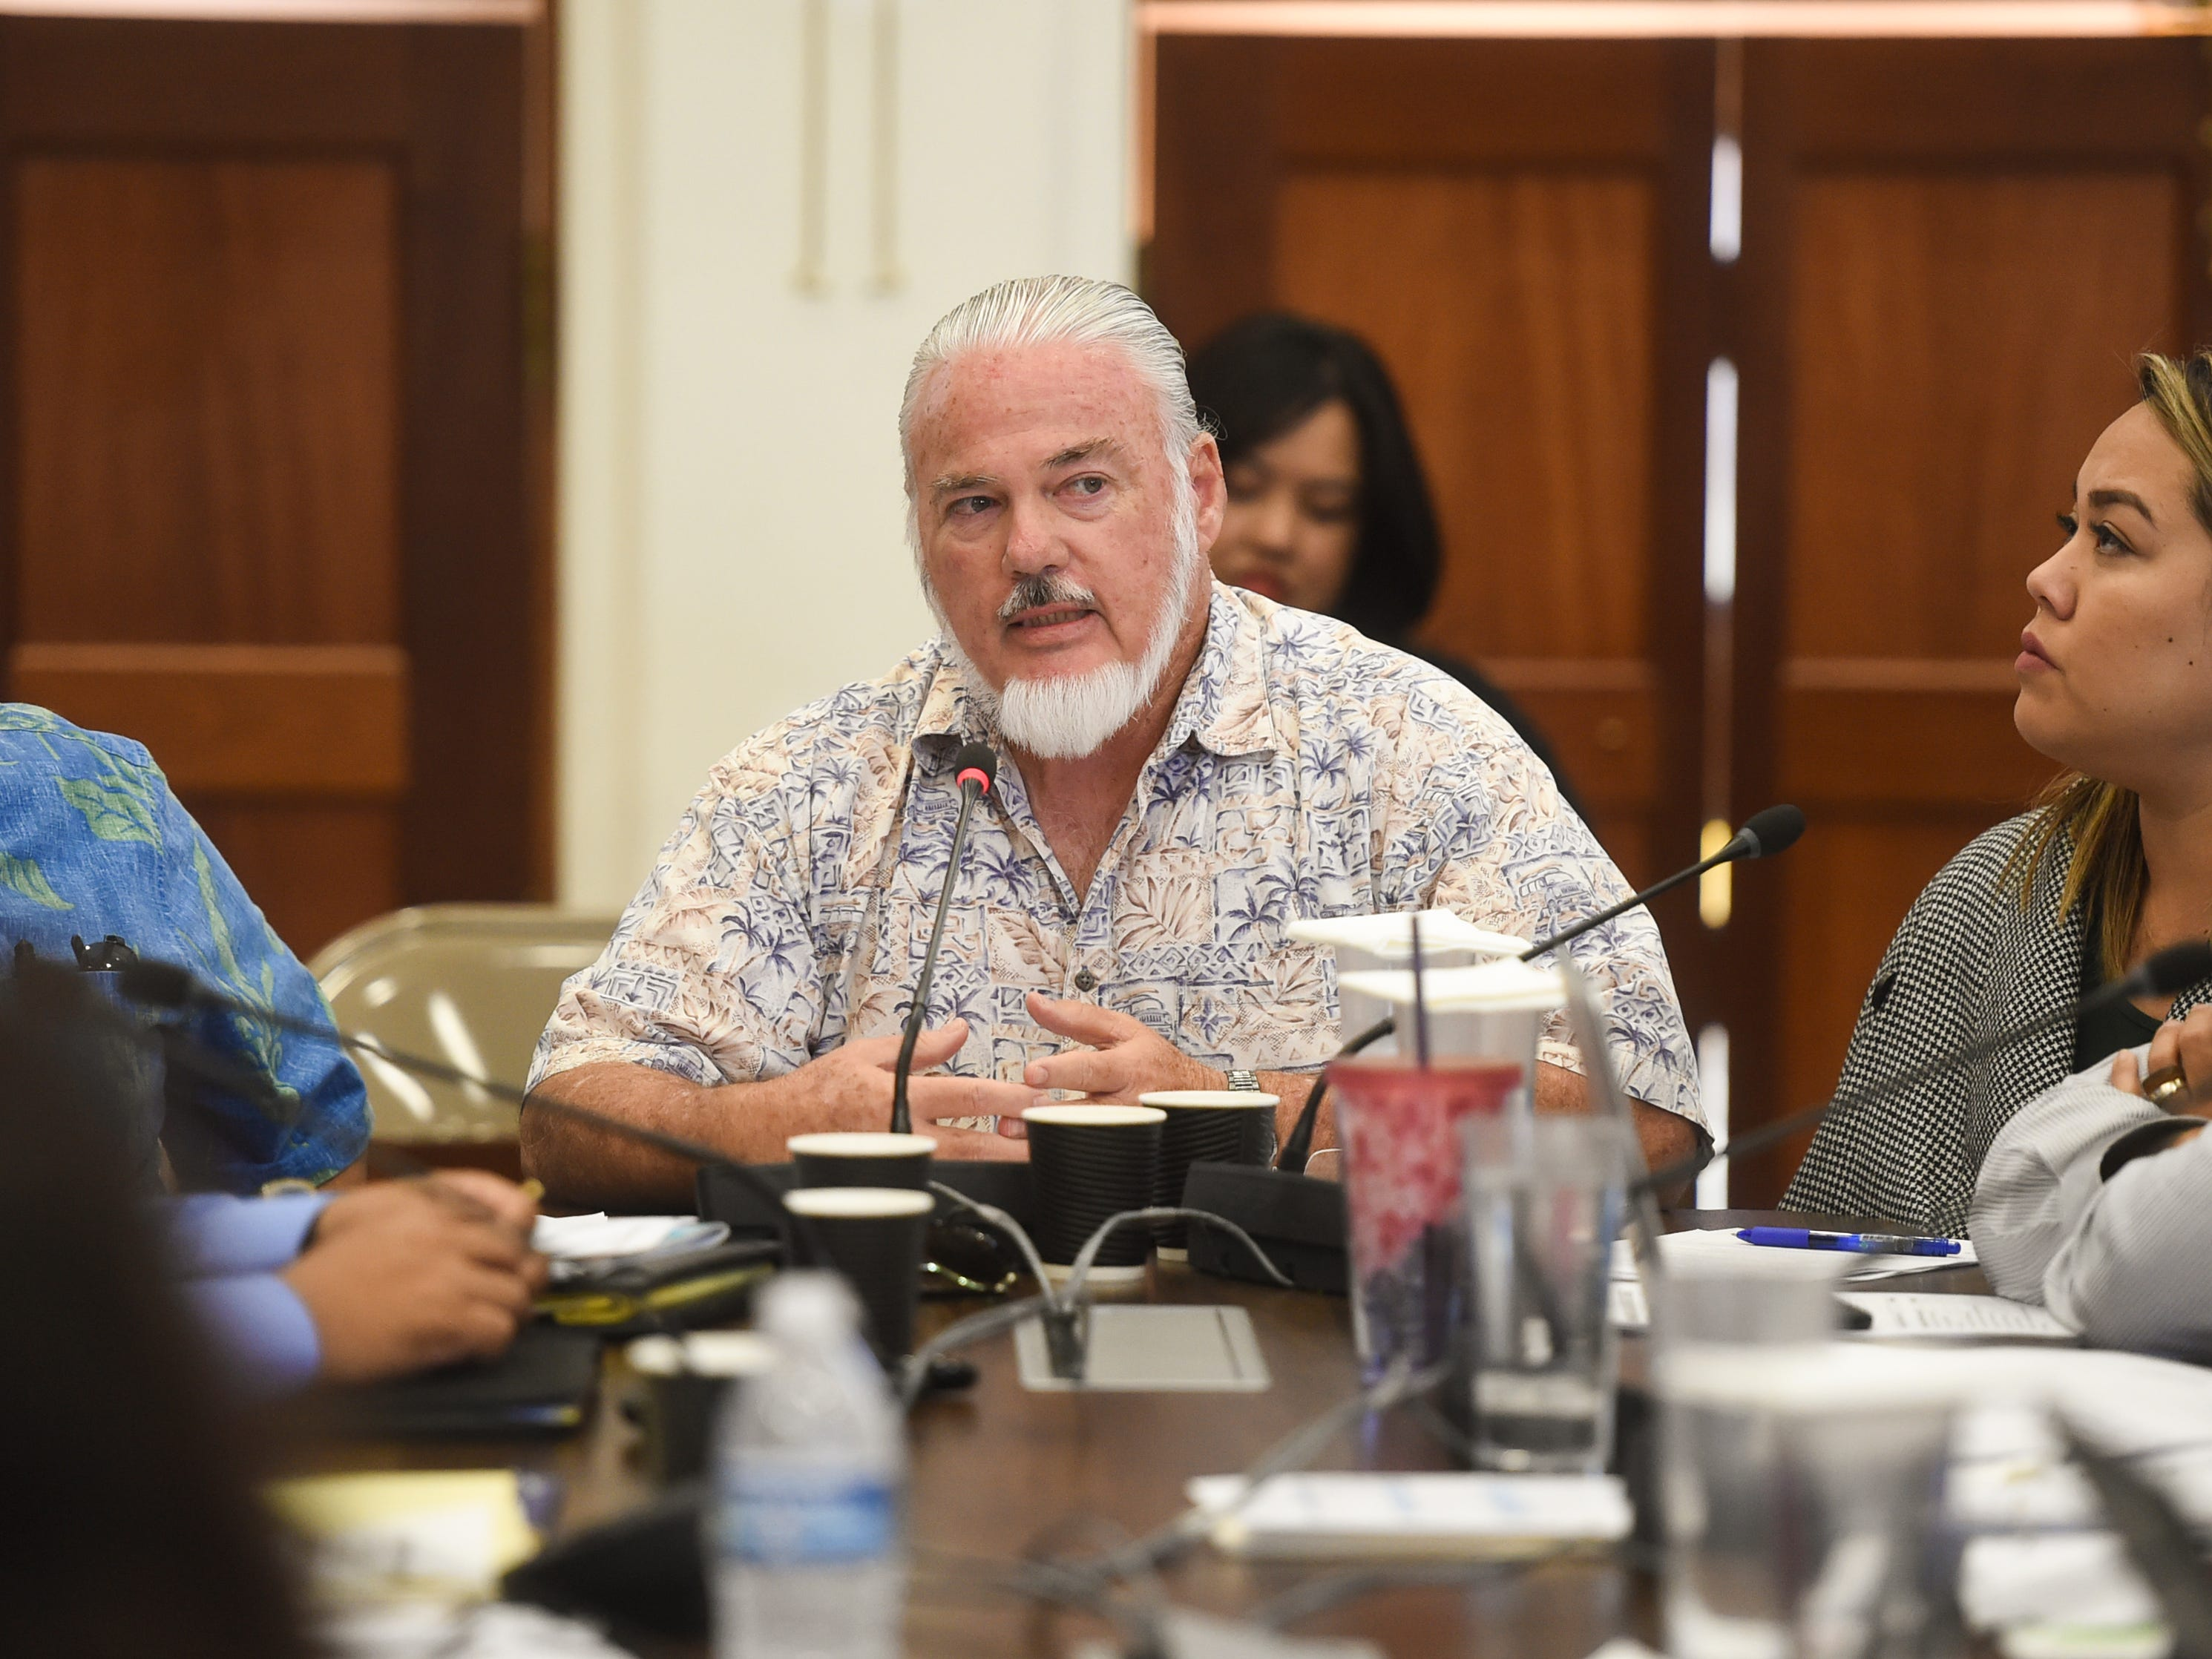 Basil O'Mallan, Office of the Attorney General chief prosecutor, comments during a roundtable discussion at the Guam Congress Building in Hagåtña on May 6, 2019.